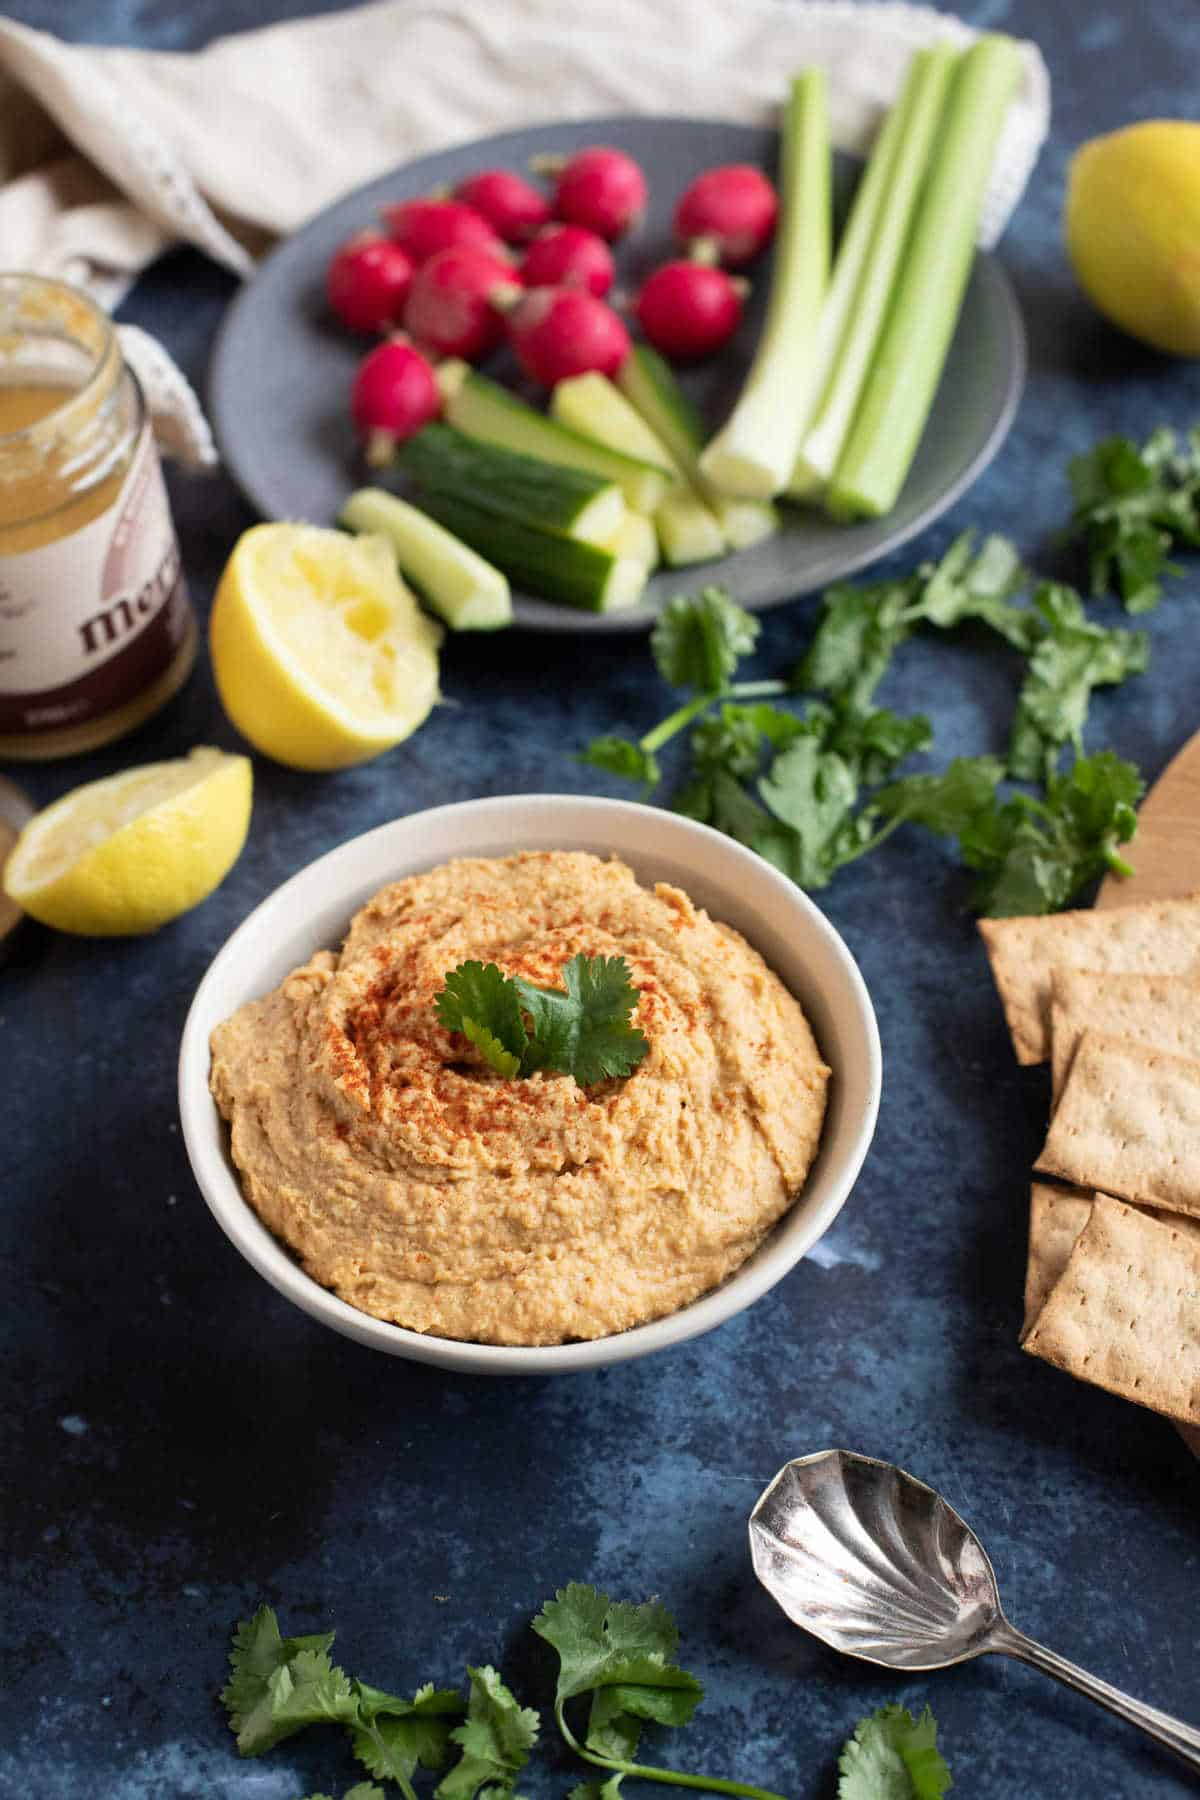 A bowl of homemade Moroccan hummus.